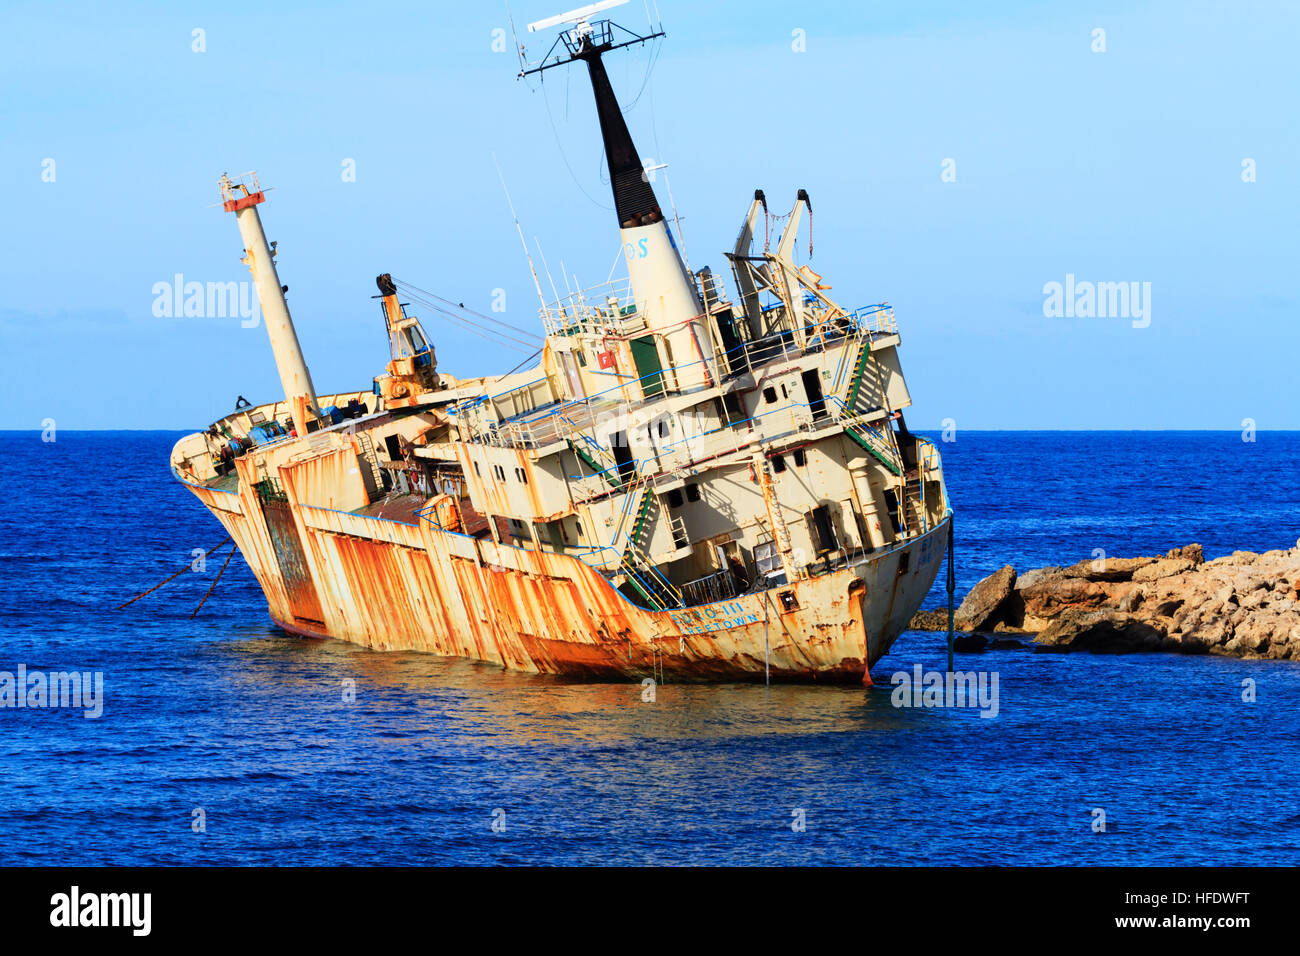 Wreck of the Edro III off Seacaves, Paphos, Cyprus. - Stock Image